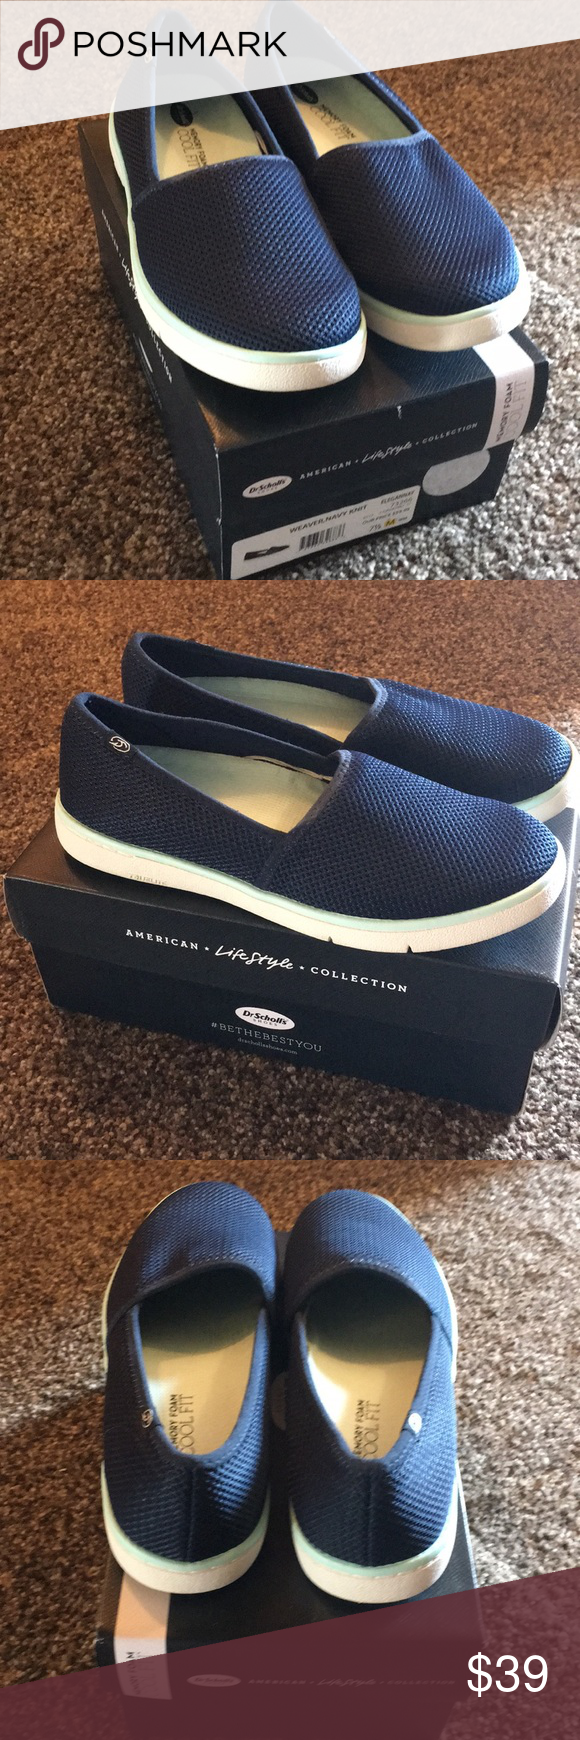 NWT Dr. Scholl's shoes memory foam cool